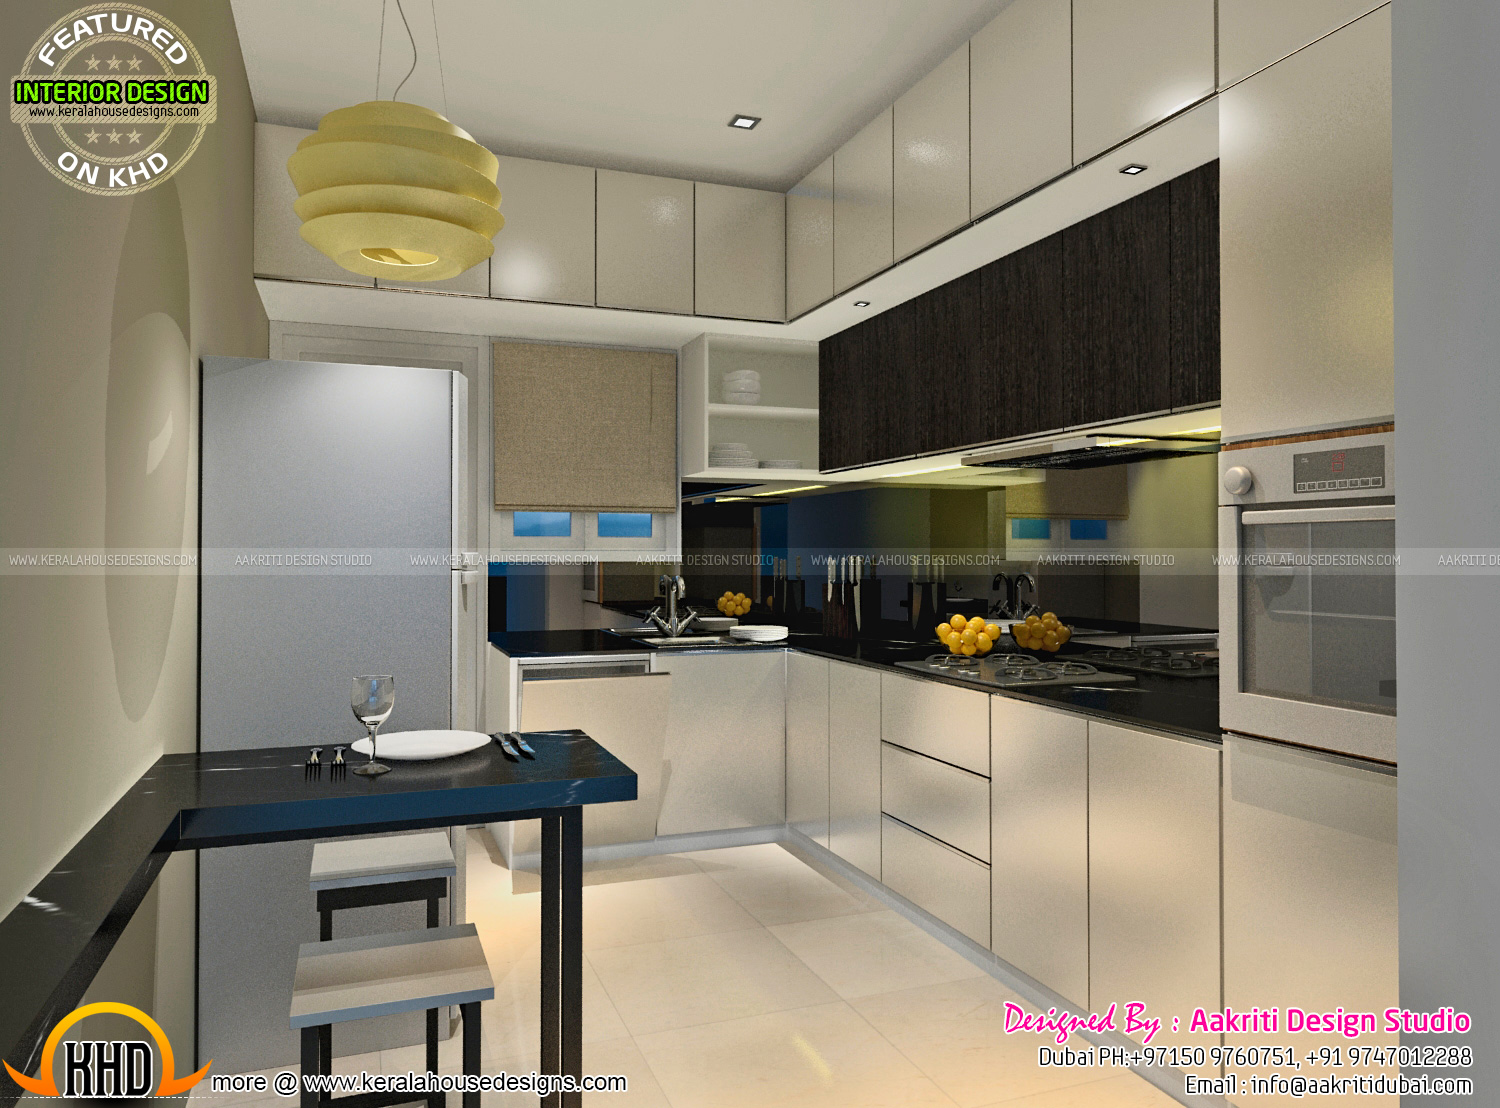 Dining kitchen wash area interior kerala home design and floor plans - Kitchen interior desing ...